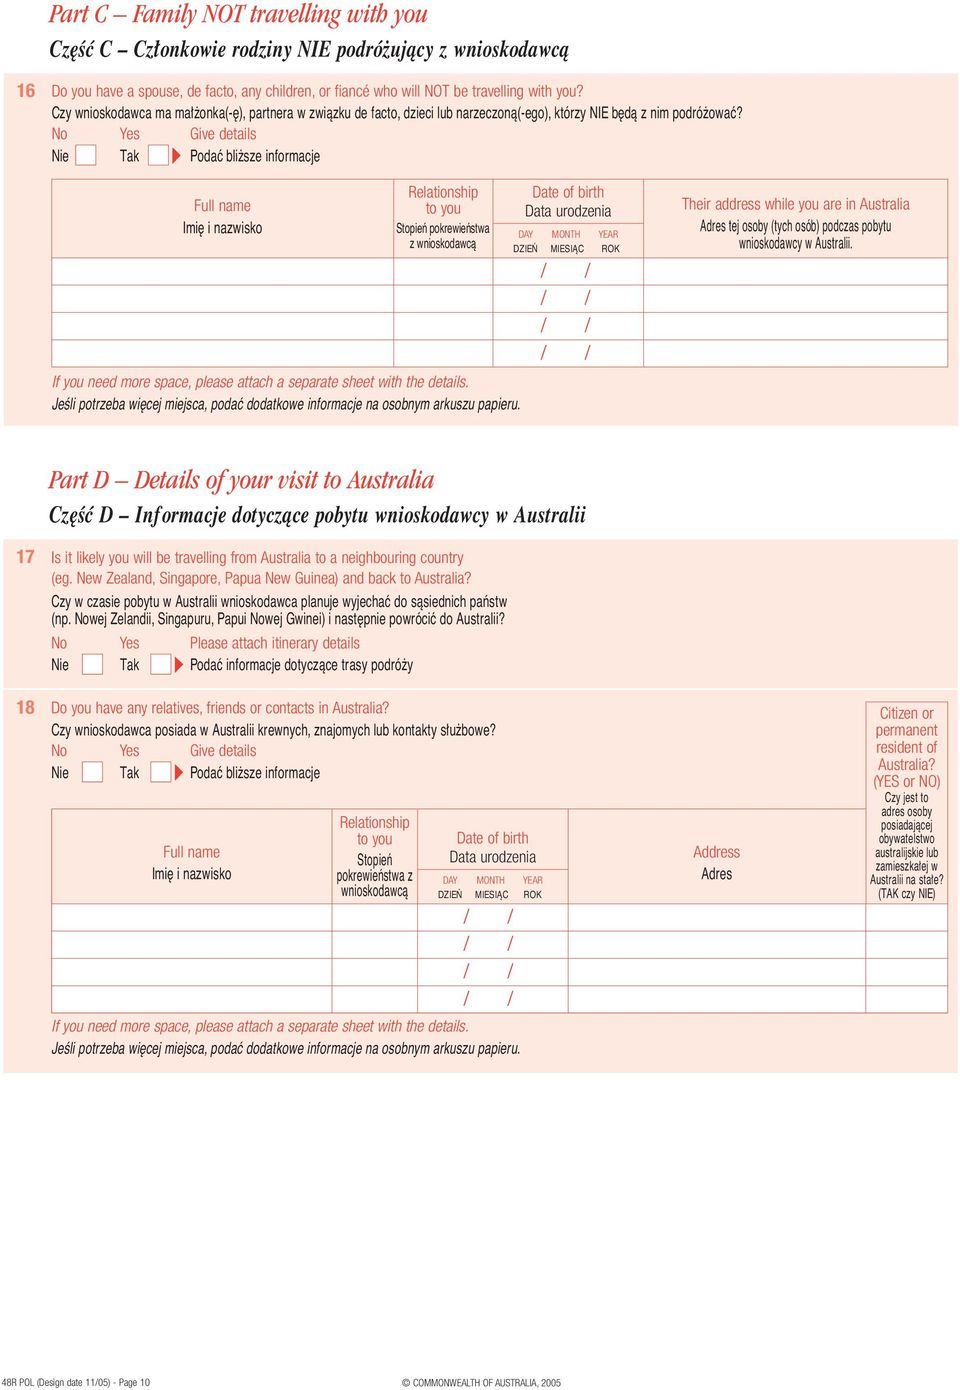 Give details Podaç bli sze informacje Full name Imi i nazwisko Relationship to you Stopieƒ pokrewieƒstwa z wnioskodawcà If you need more space, please attach a separate sheet with the details.